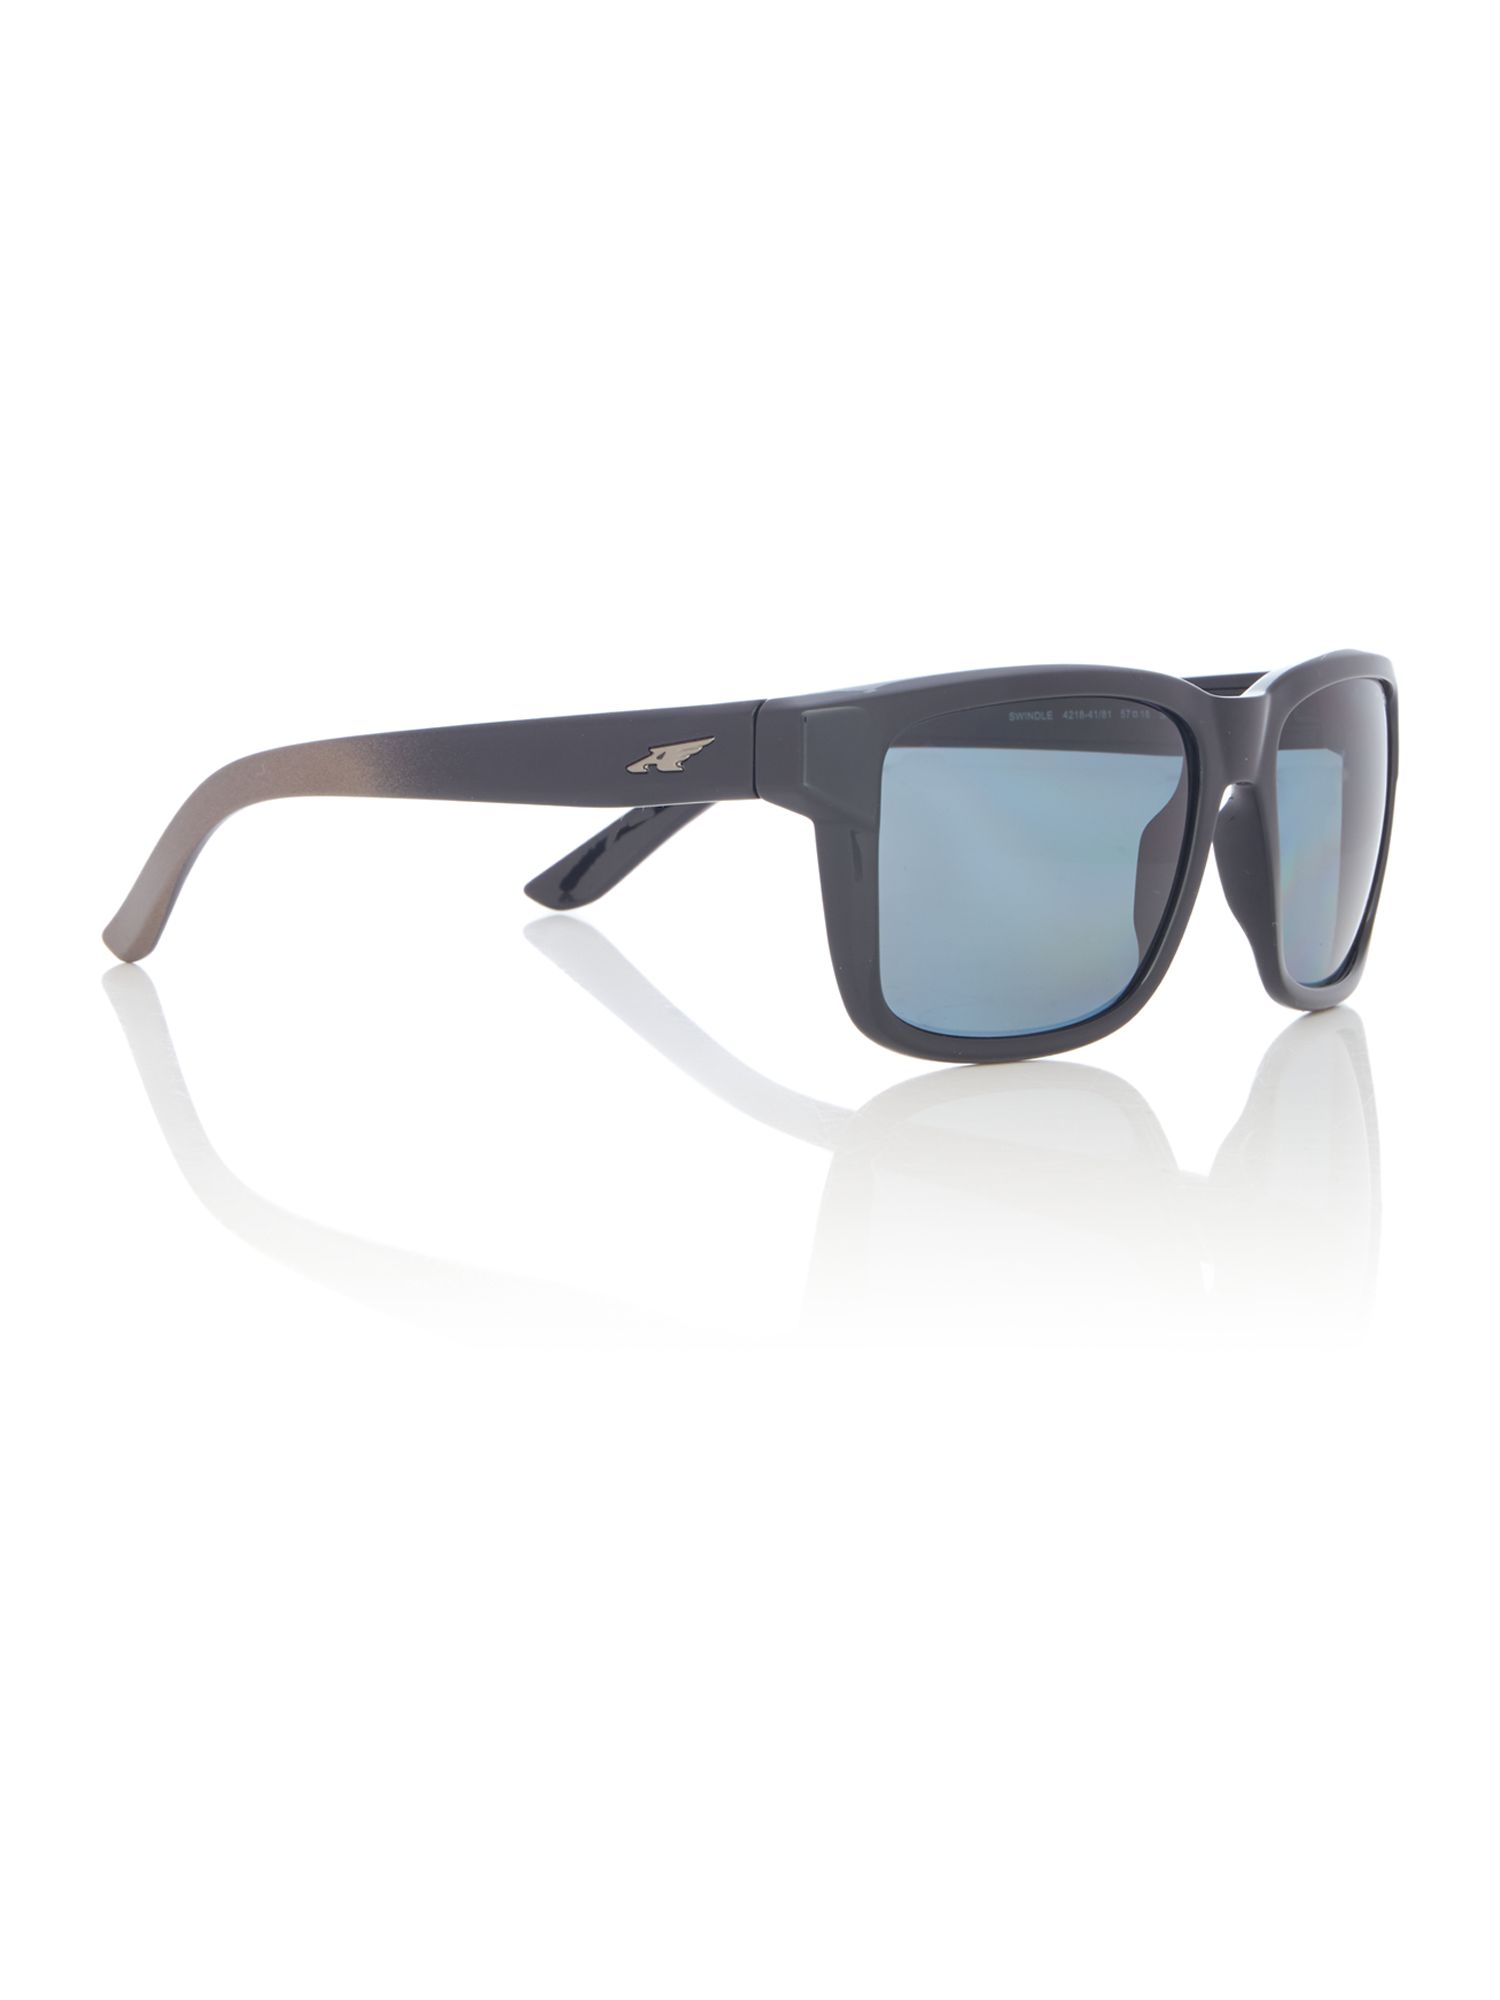 Arnette AN4218 rectangle sunglasses